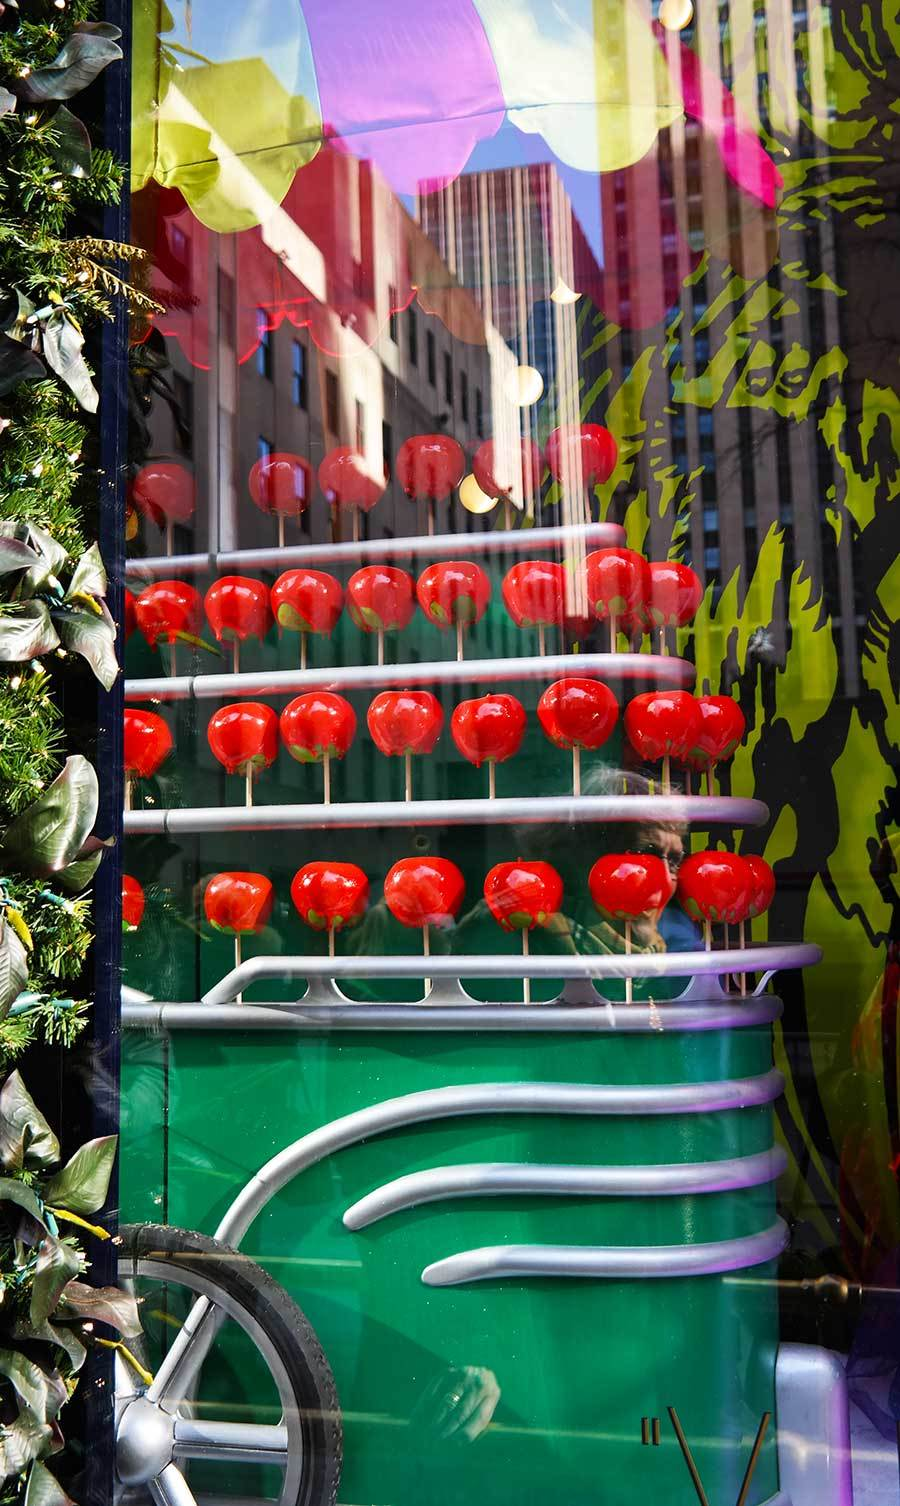 poison-apples-as-Nyc-street-food